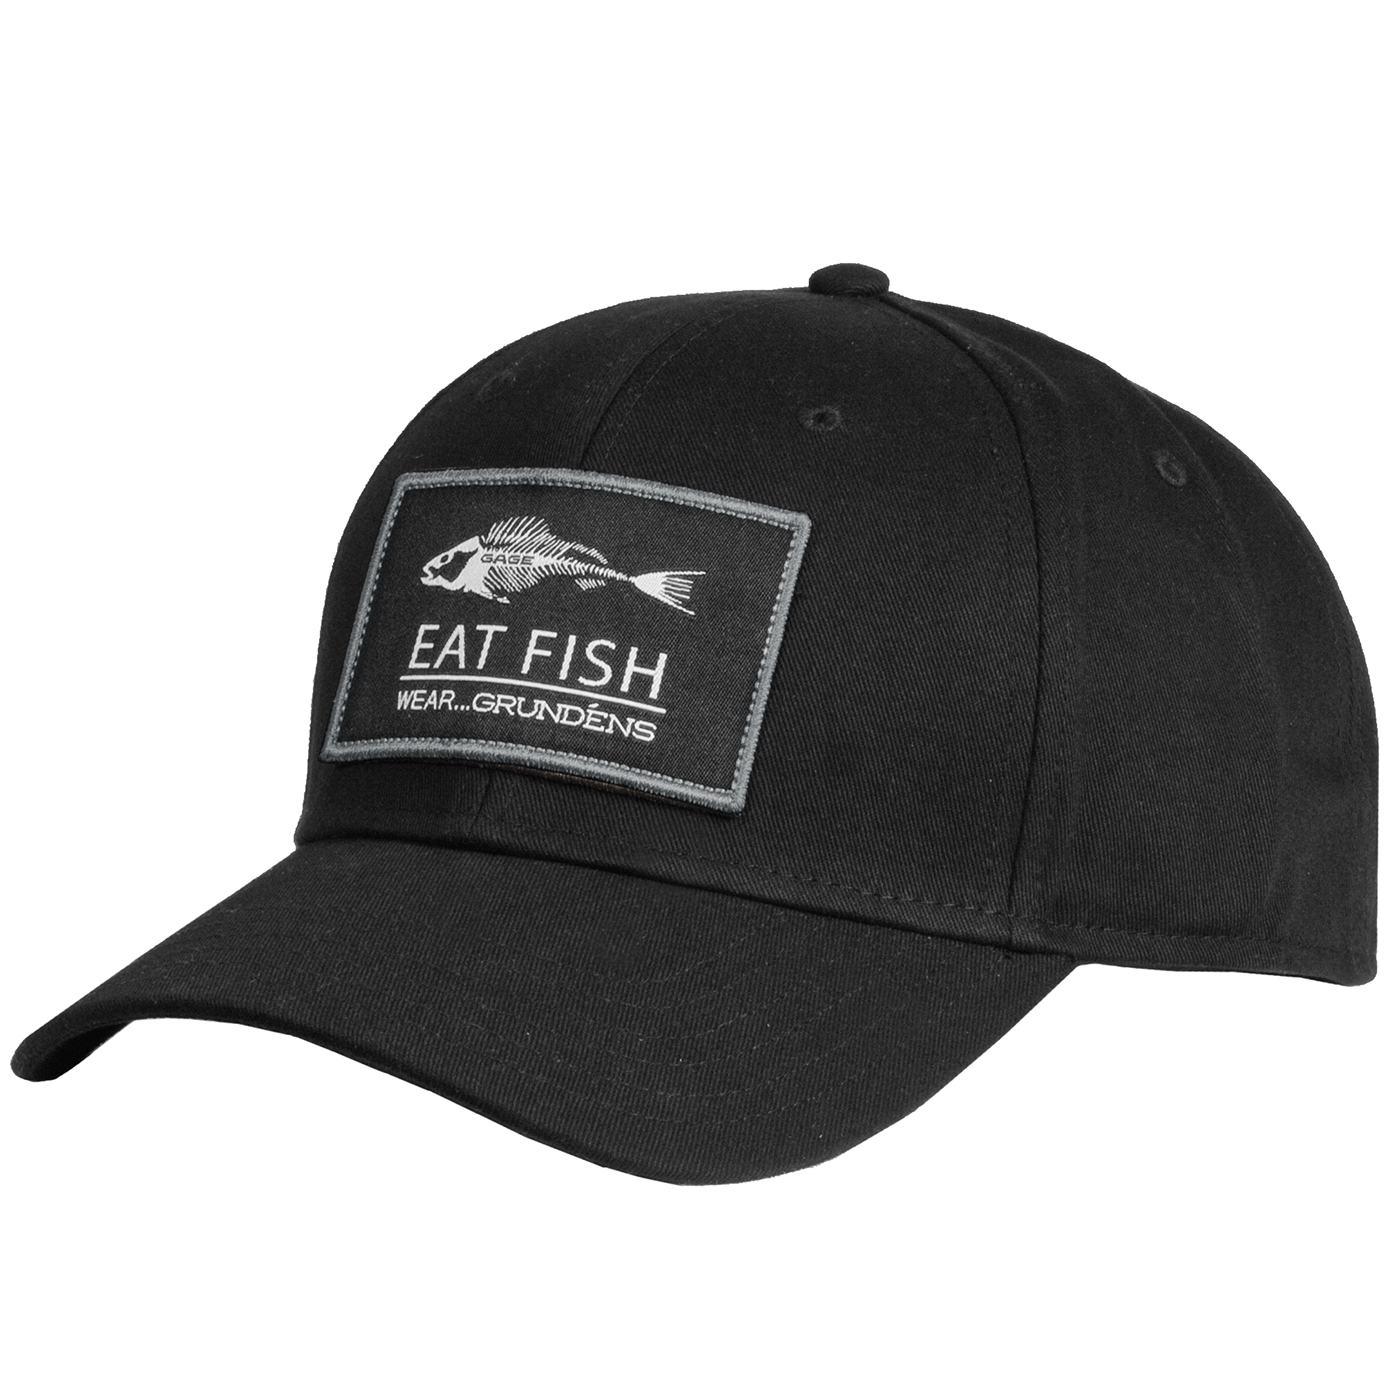 Eat Fish Ball Cap Side View